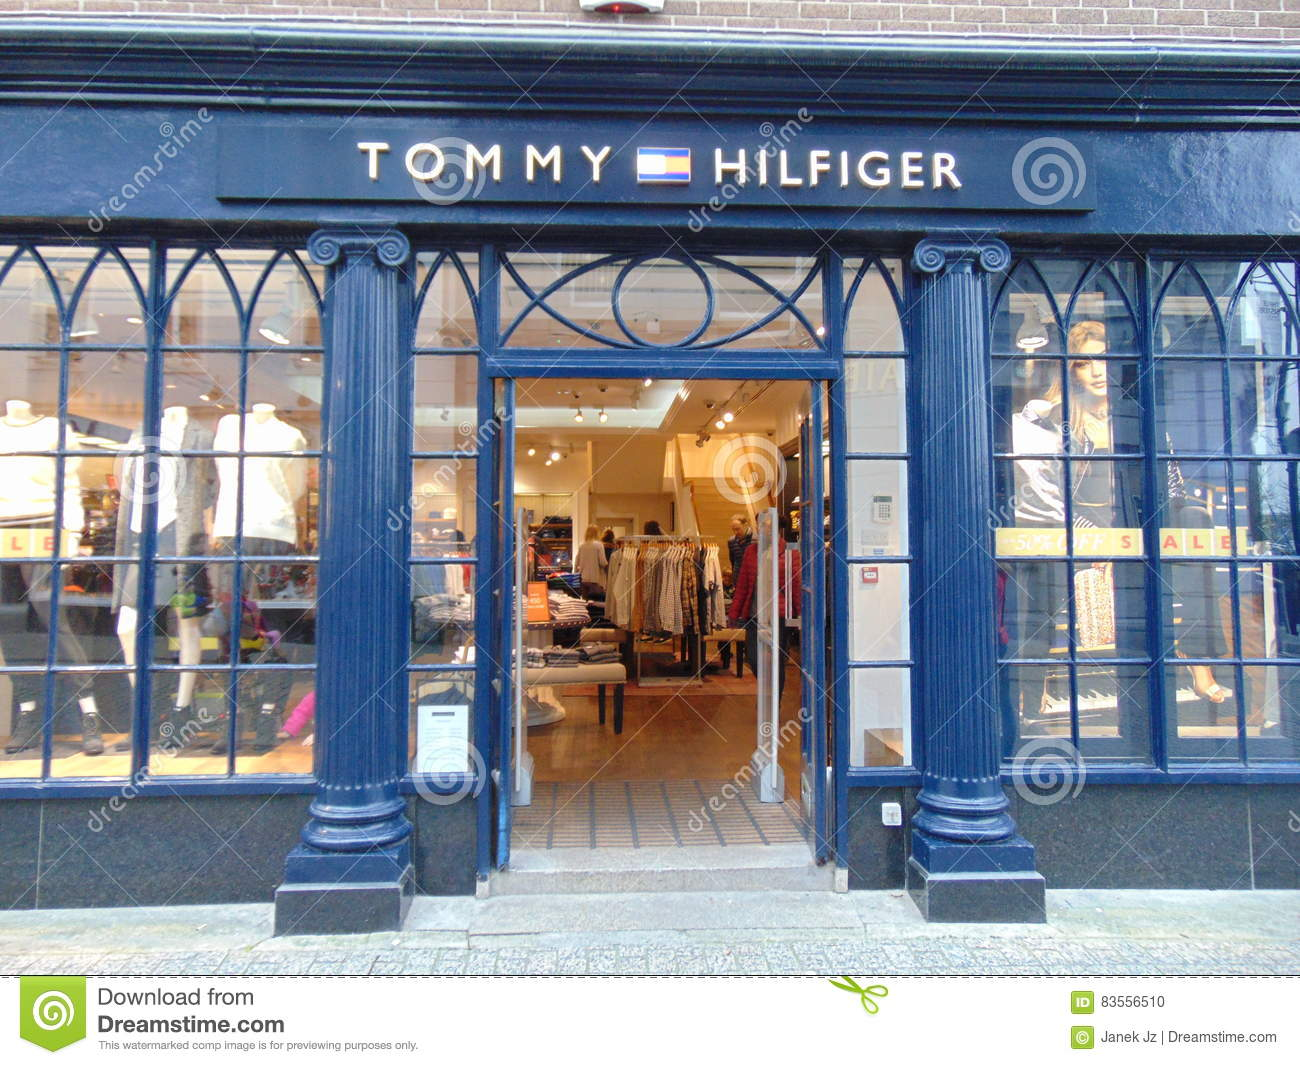 cc3203b537ada2 A Tommy Hilfiger store front located in Waterford city centre. . The unique  shop makes it easily recognisable on the main street.